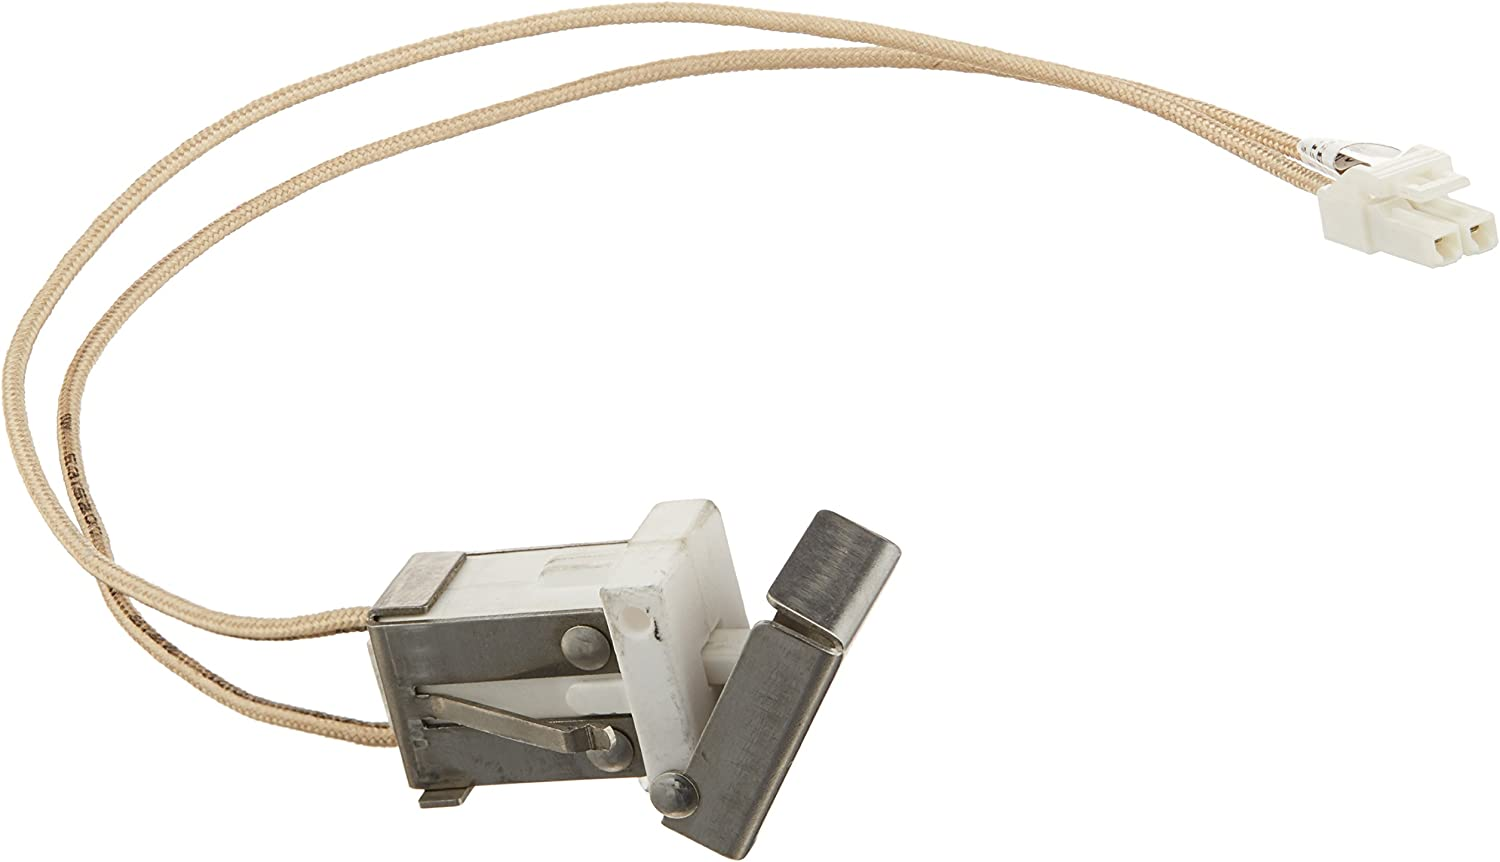 GENUINE Frigidaire 316508301 Range/Stove/Oven Rack Sensing Switch